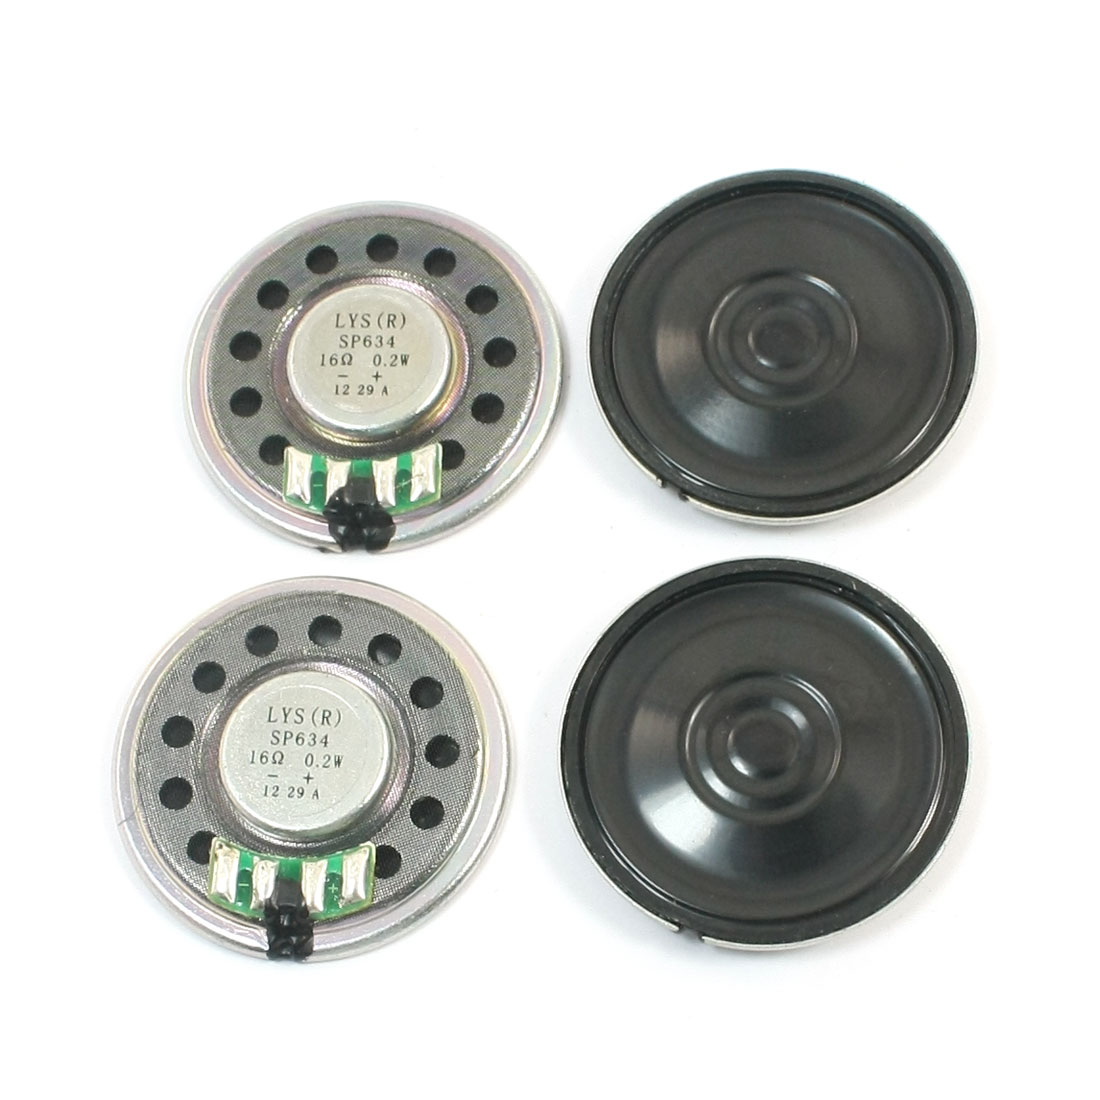 36mm Round Metal Shell Internal Magnet Speaker Learnning Machine Audio Amplifier Loundspeaker 0.2W 16 Ohm 4Pcs